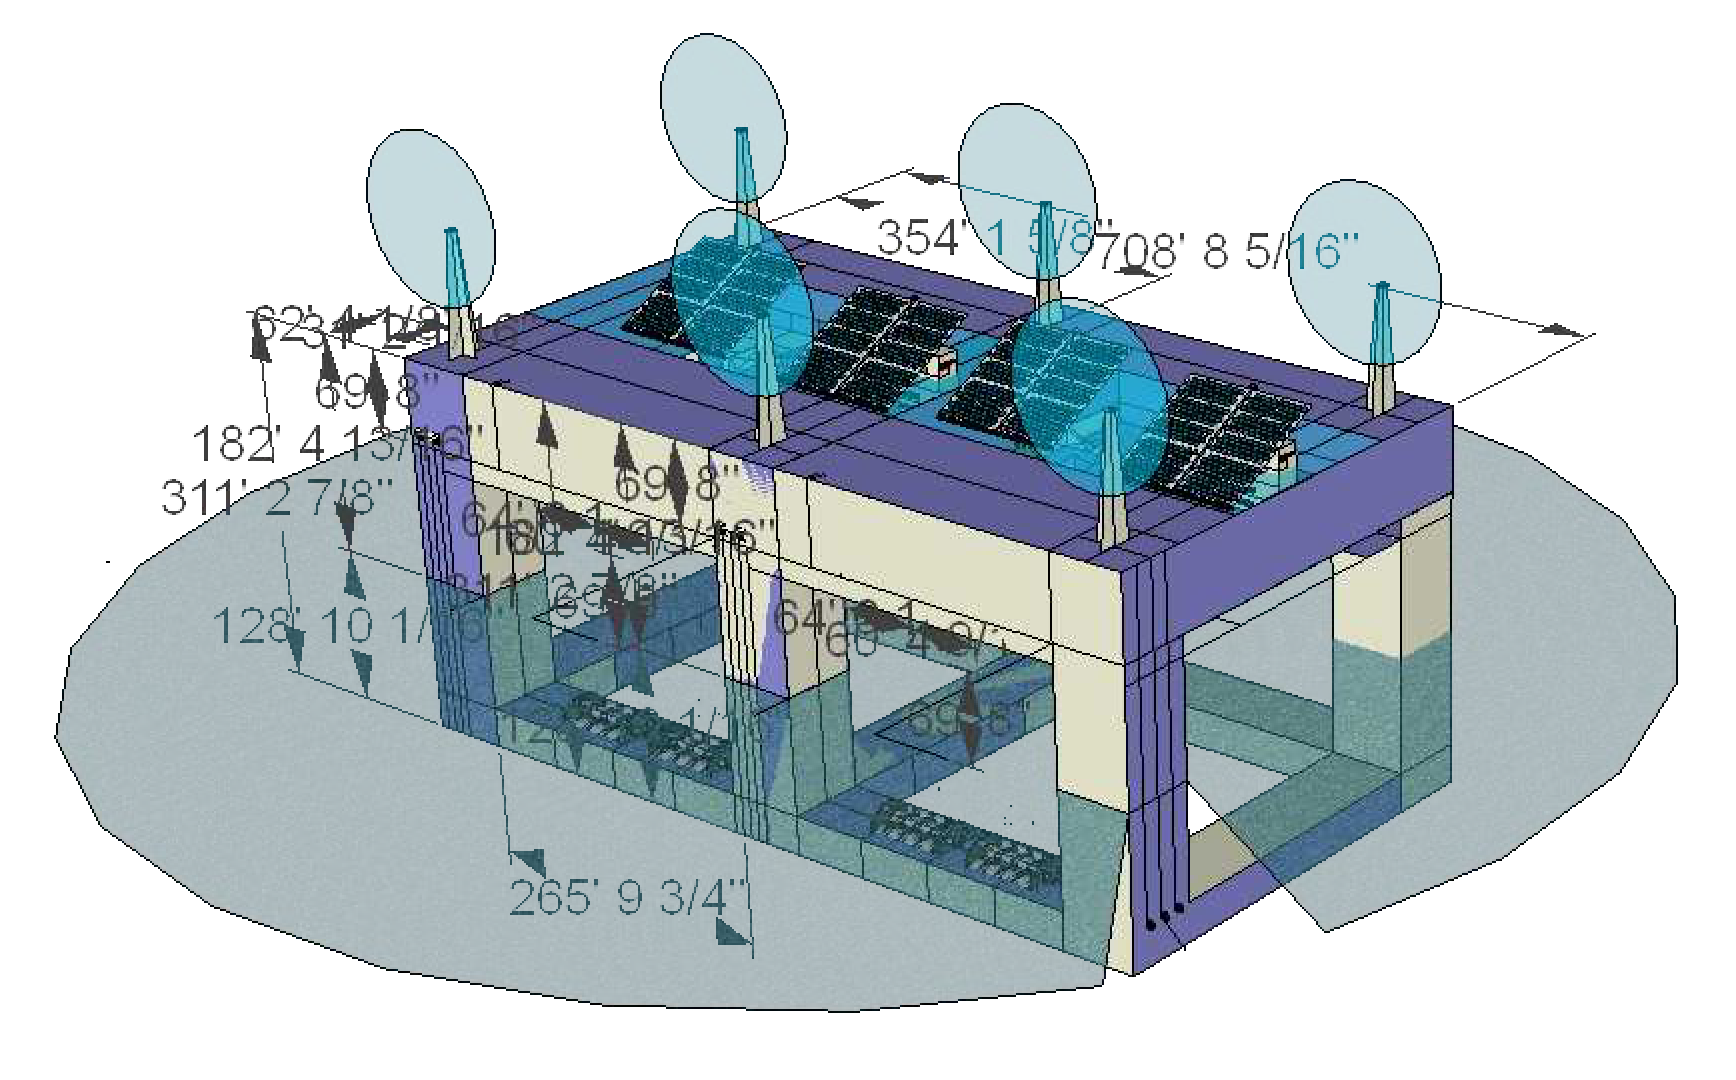 Combine Wind, Solar and Wave energy generation in a single platform